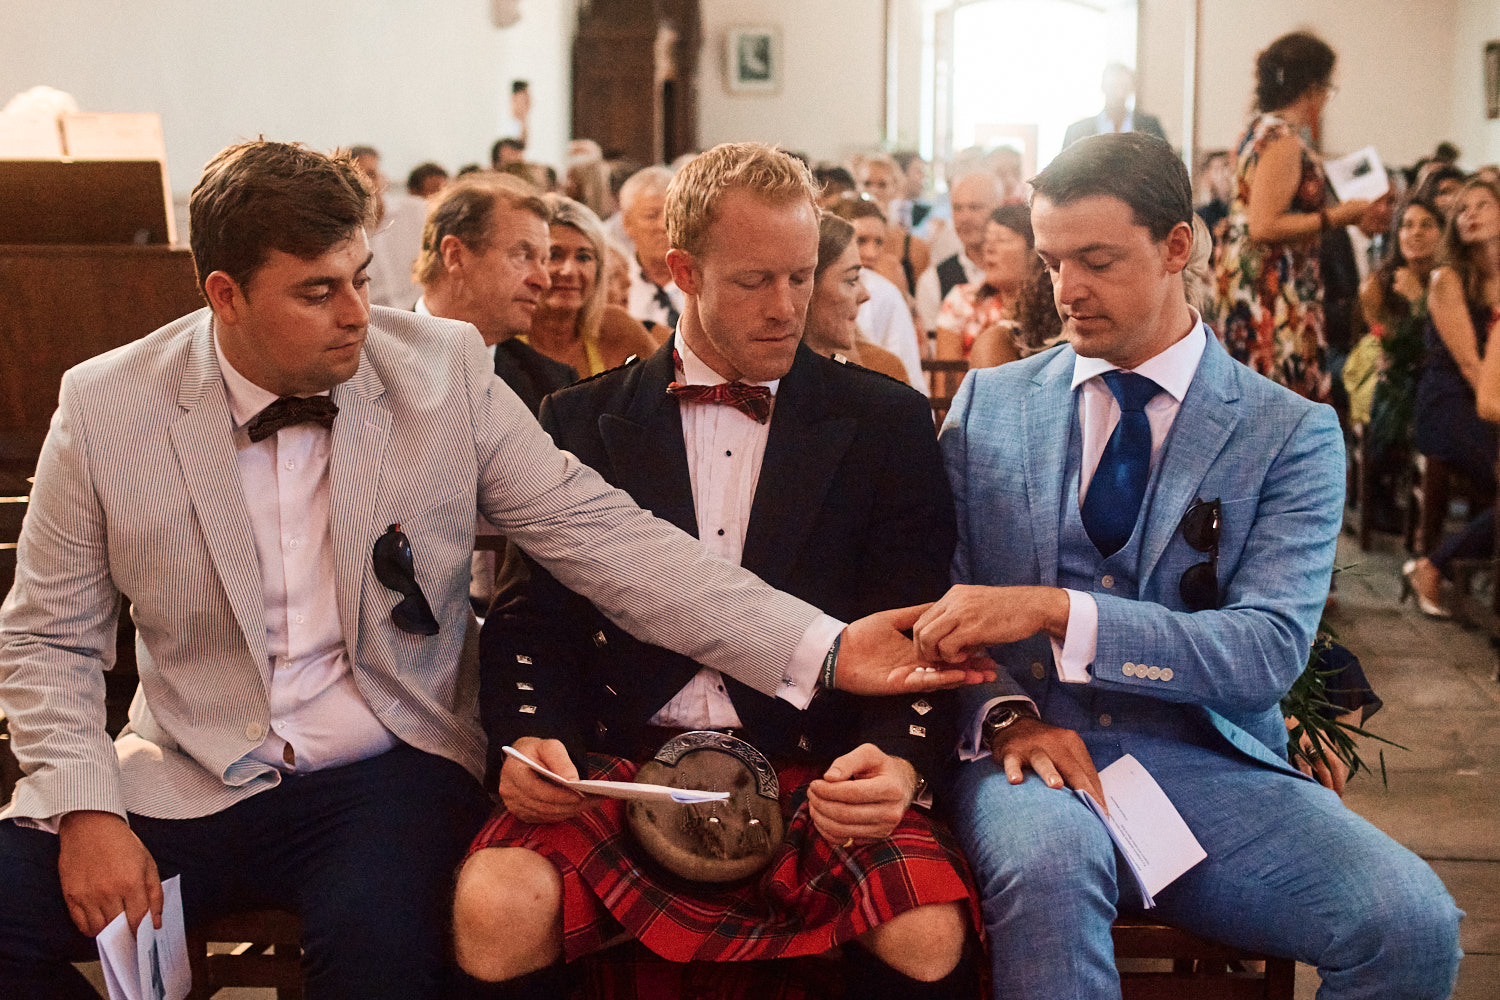 Groomsmen share chewing gum before a wedding ceremony in a French chapel